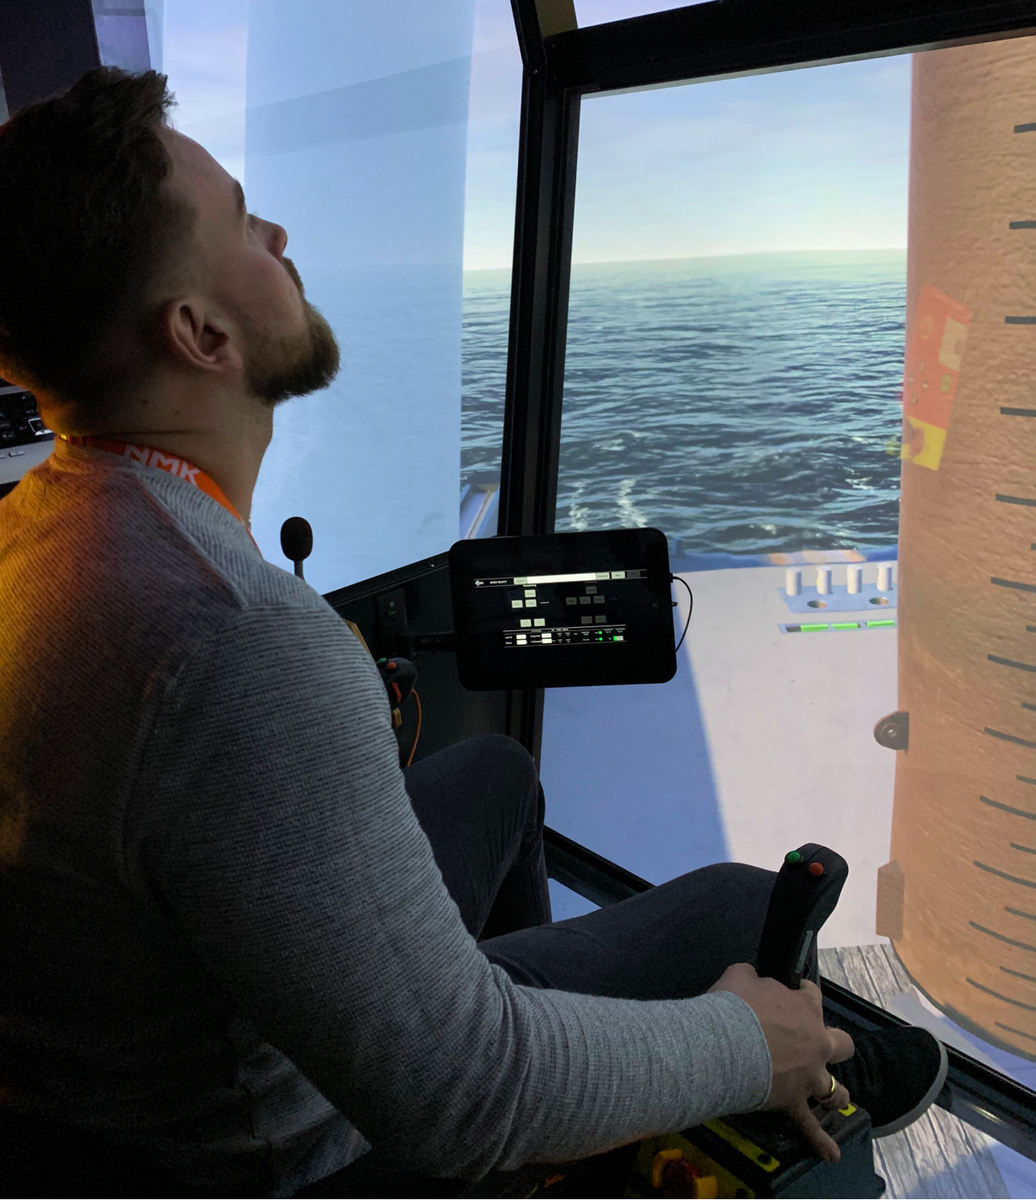 Joint simulator training between Ocean Installer, Equinor and Island Offshore was critical to enhancing safety prior to undertaking the work